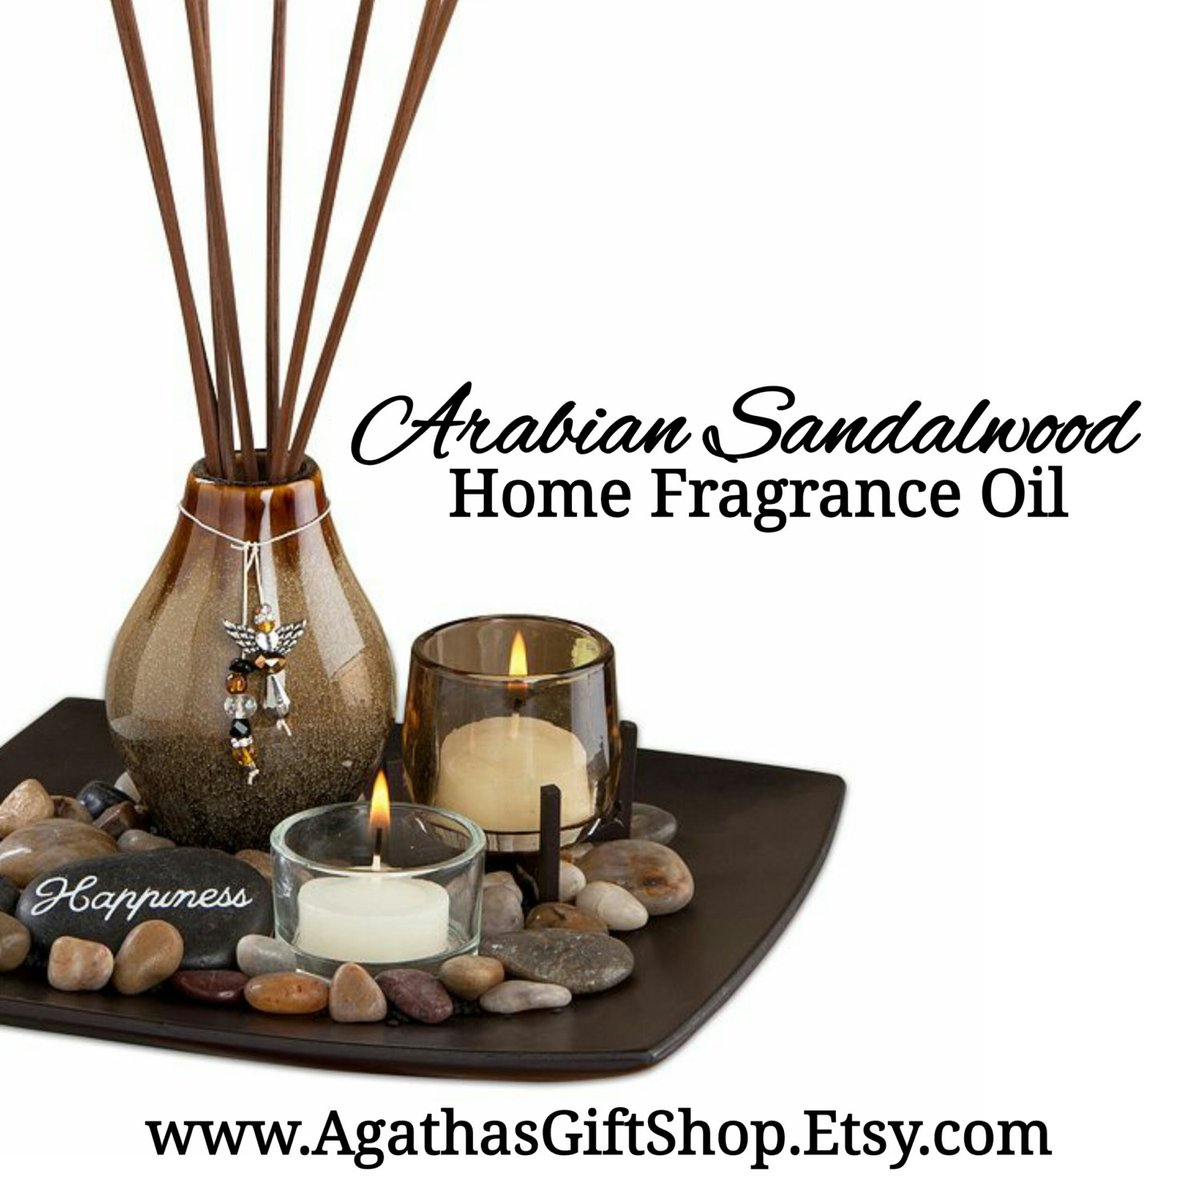 Arabian Sandalwood Home Fragrance Diffuser Warmer Aromatherapy Burning Oil  #HomeFragranceOil #PerfumeBodyOils #GiftShopSale #Incense #AromatherapyOil #Wedding #BlackFriday #CyberMonday #HerbalRemedies #Etsy #HerbalOils